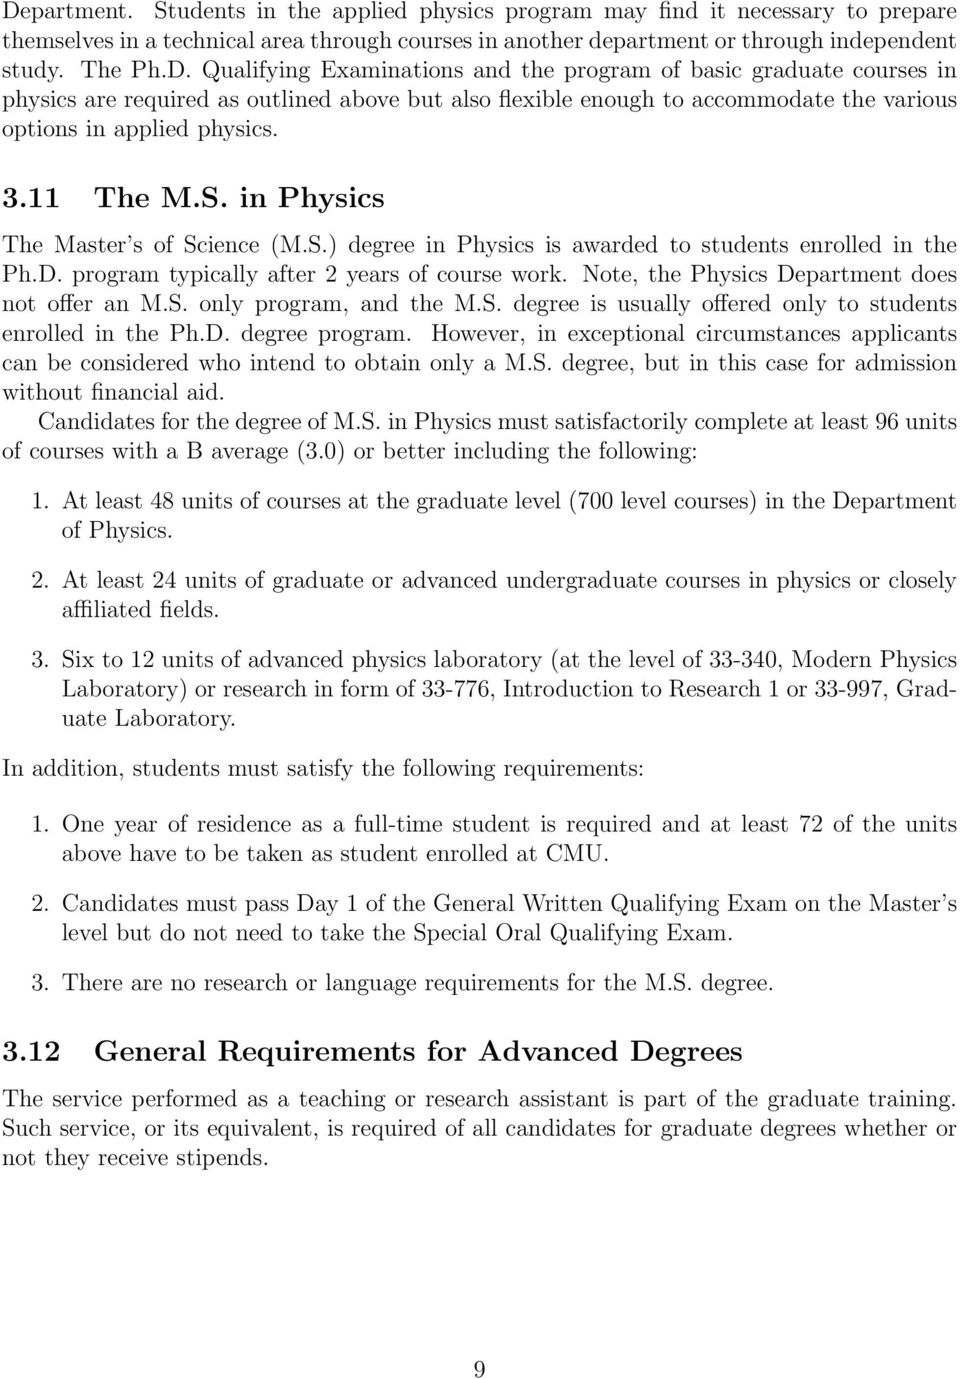 Note, the Physics Department does not offer an M.S. only program, and the M.S. degree is usually offered only to students enrolled in the Ph.D. degree program.